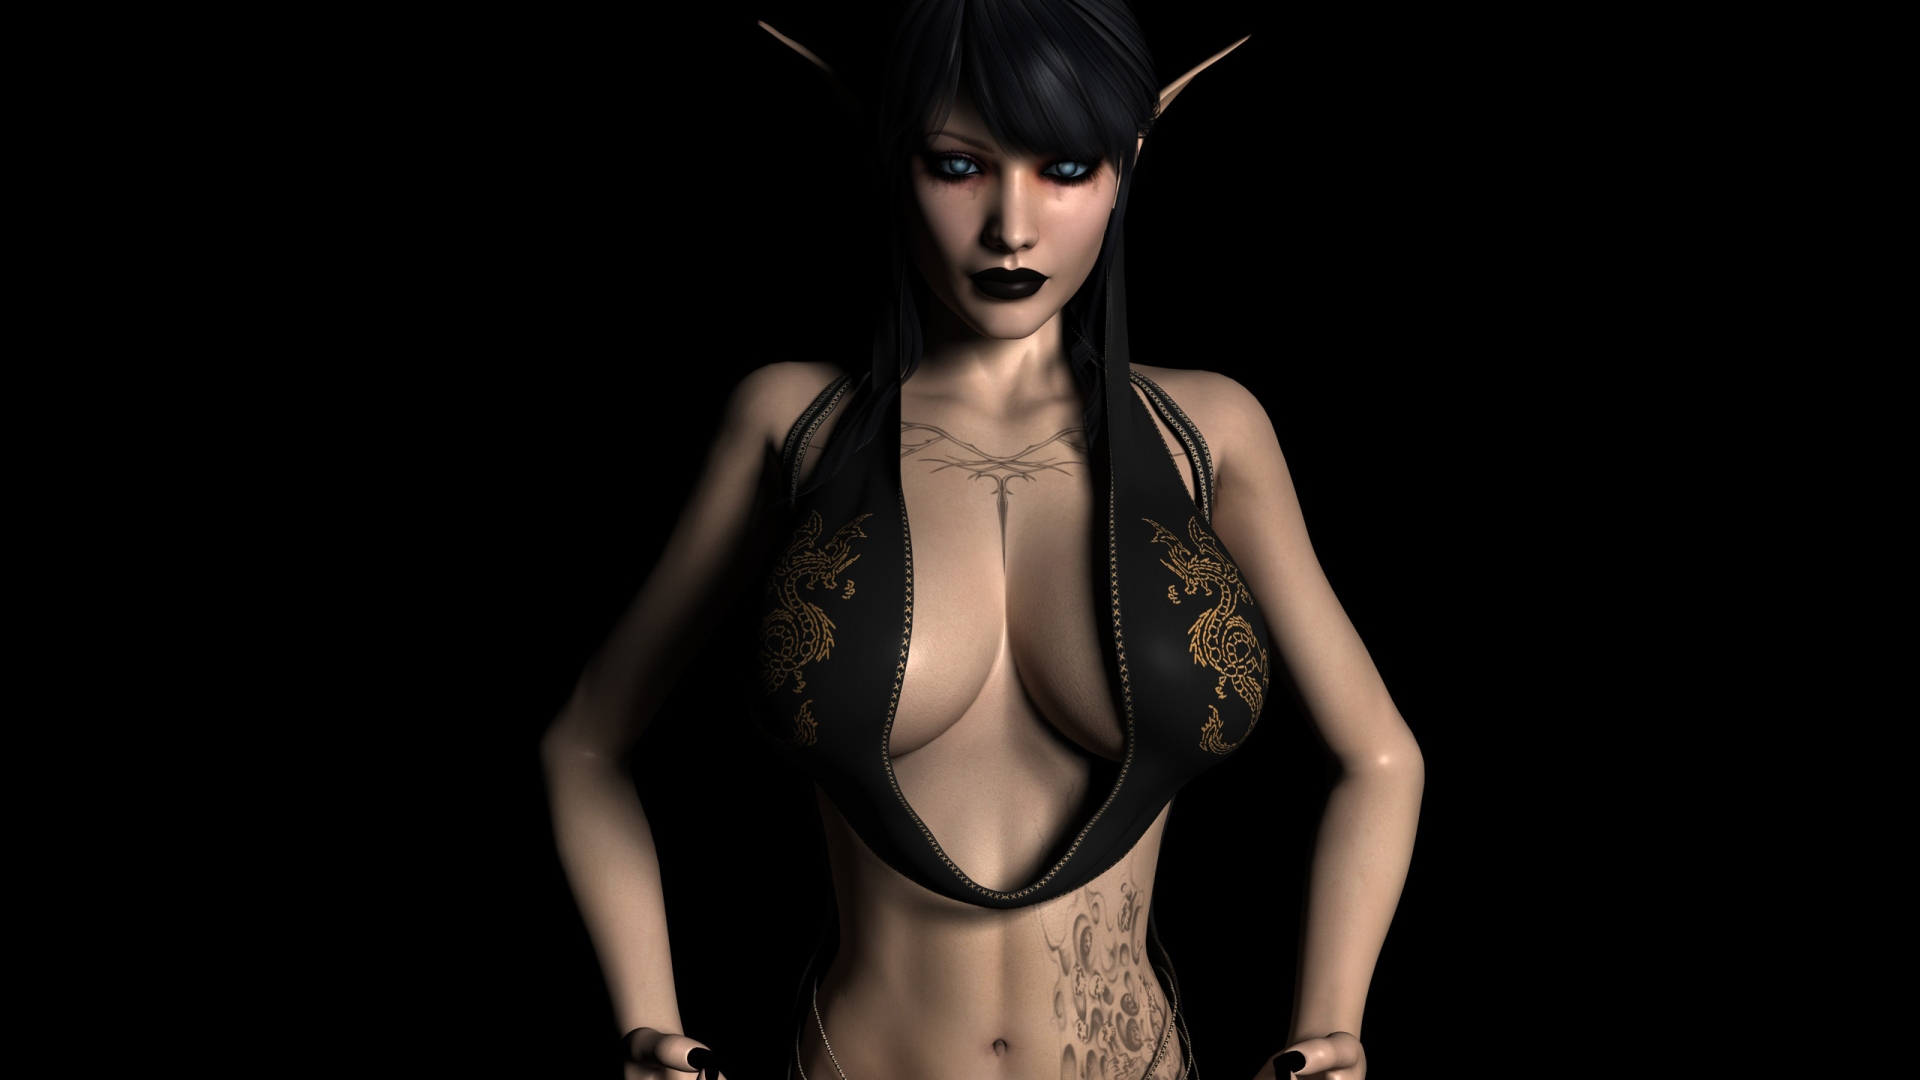 Hot 3d warcraft elves exposed comic